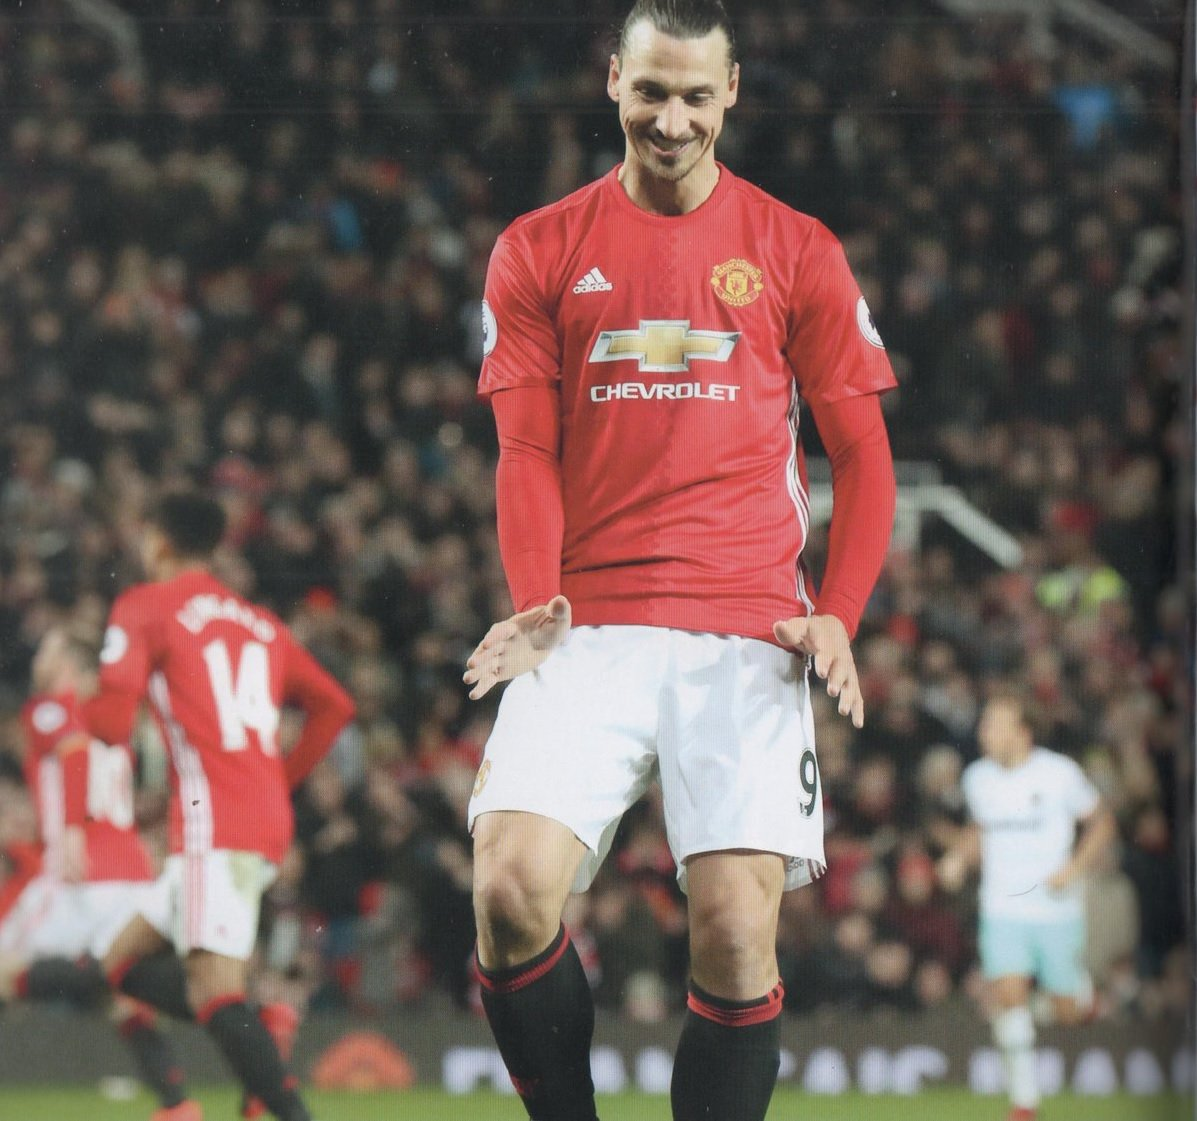 Could We See The Return Of This Lion, King,Swede (In Short Zlatan) Return To United For Unfinished Business? #MUFC #Zlatan #MUFC_FAMILY<br>http://pic.twitter.com/4AI3b3fQXW